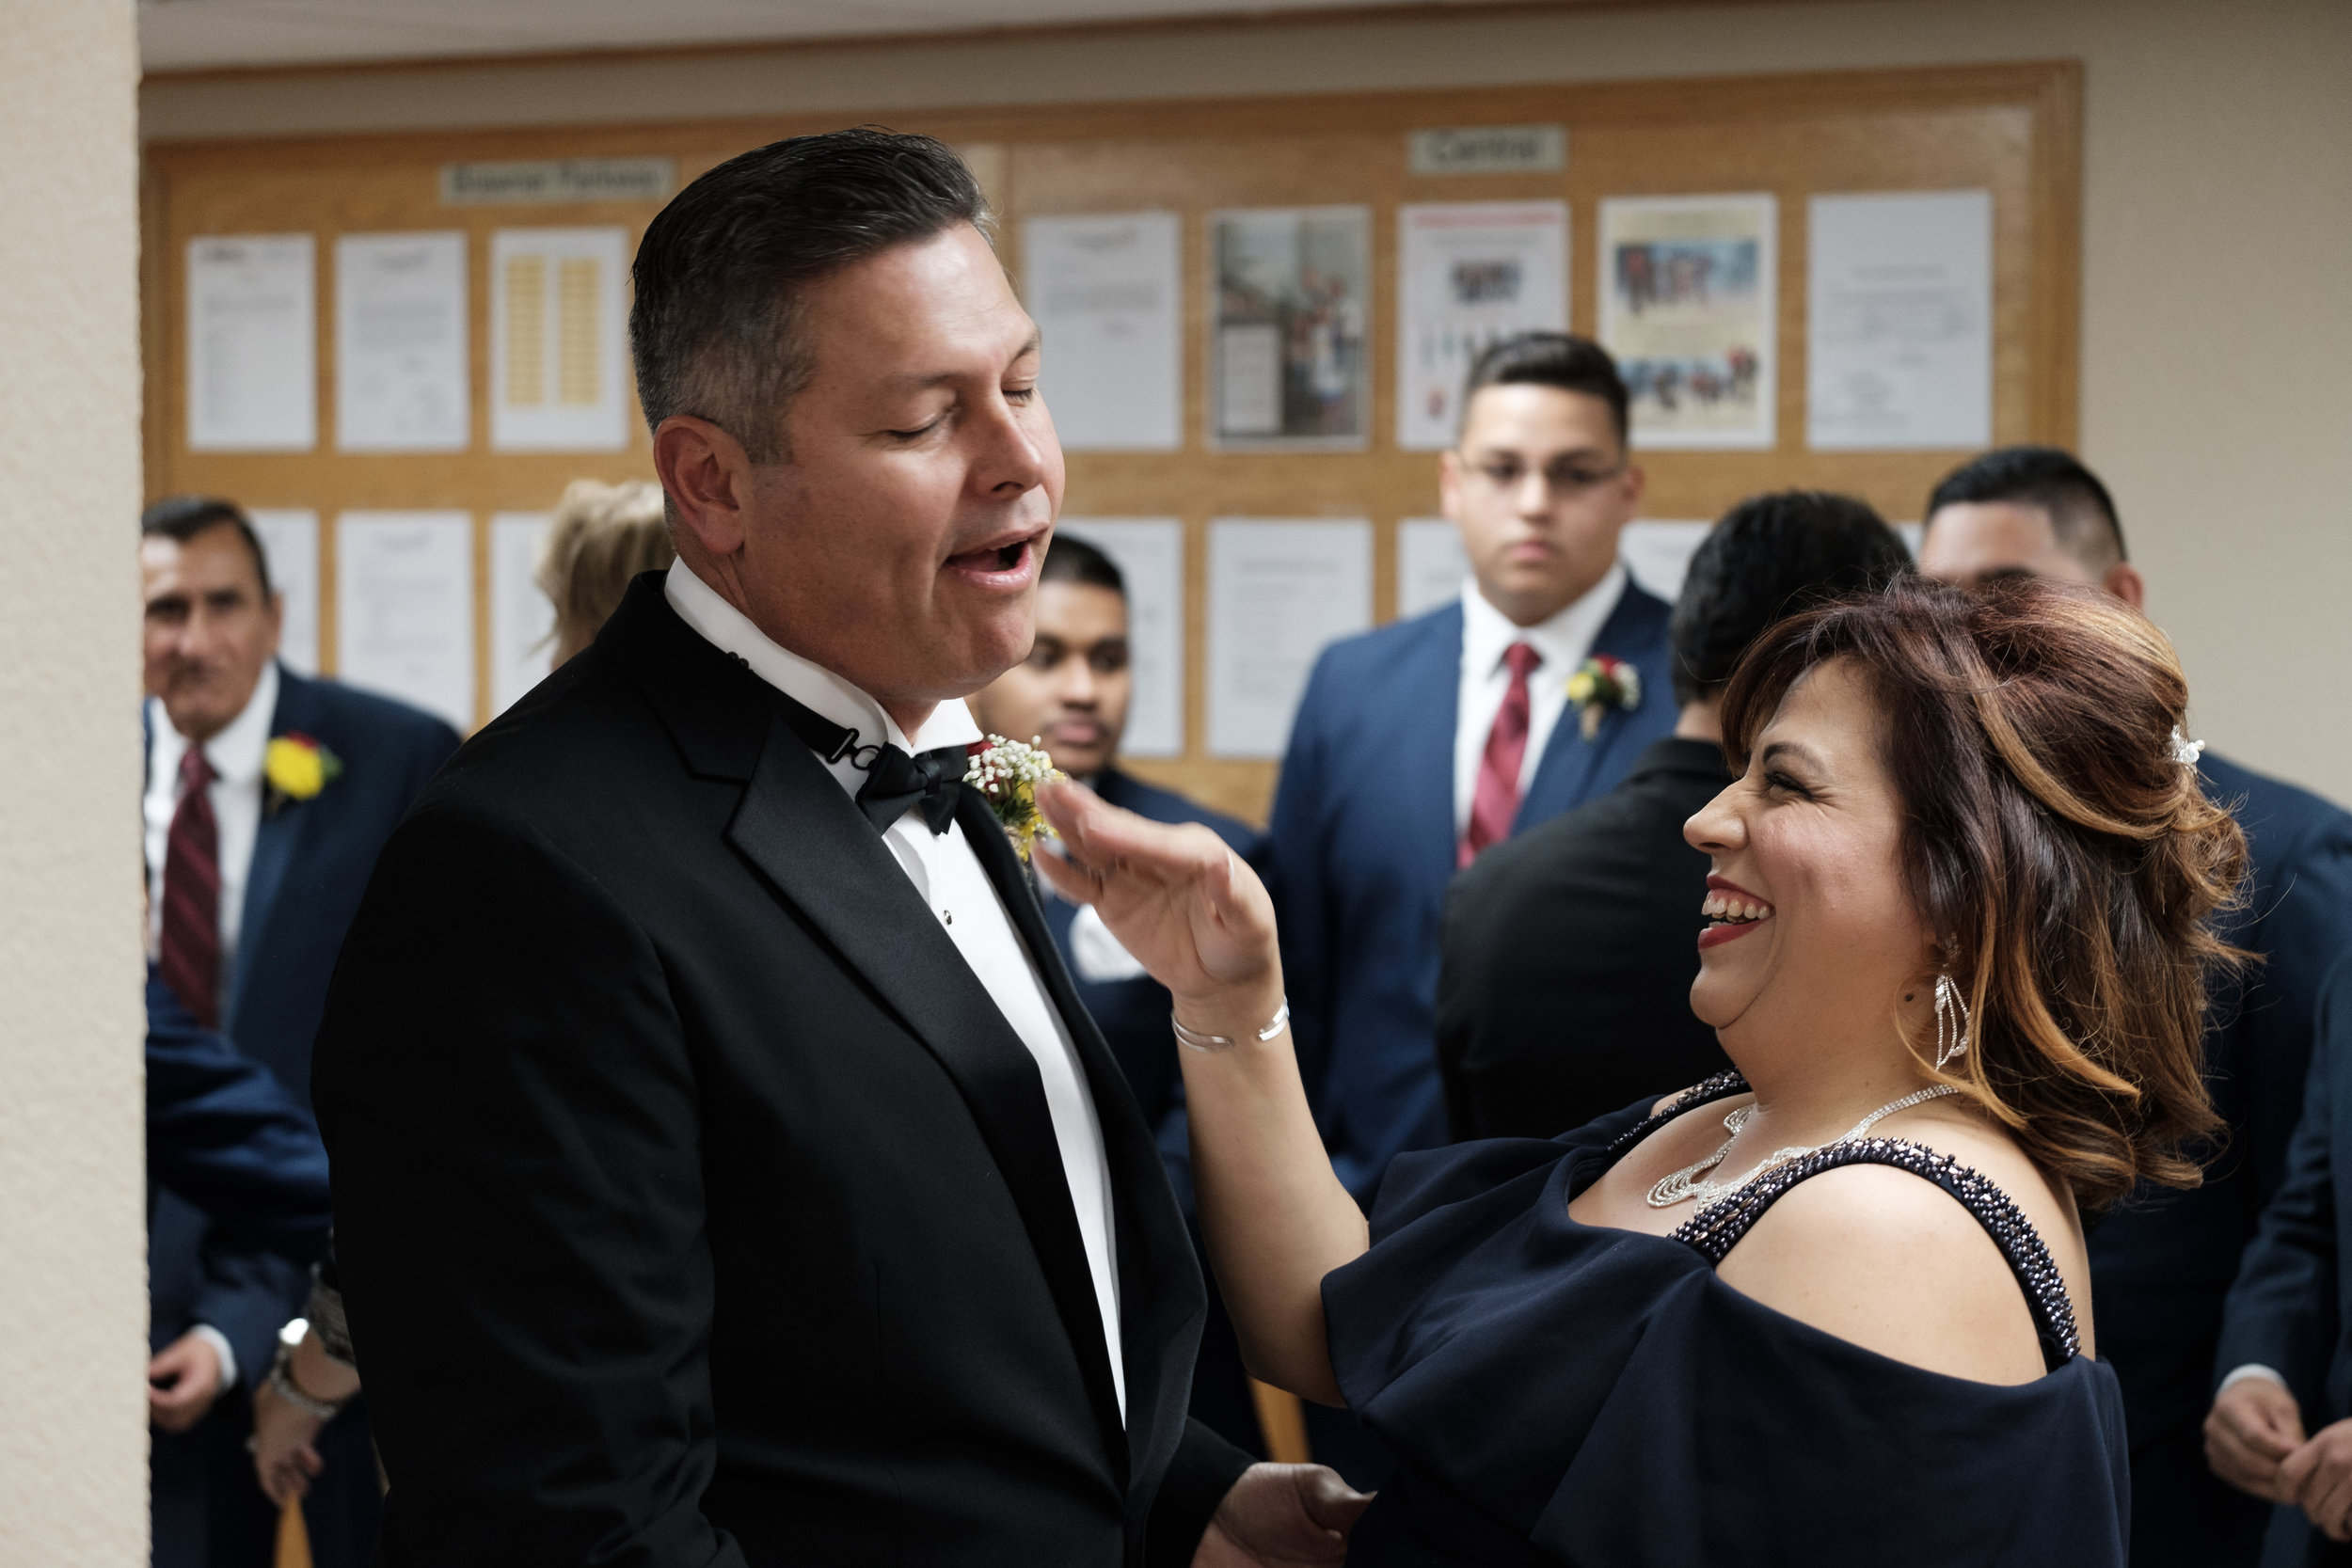 Mother and Father of the bride having a silly moment. Fuji Xpro 2, Fujinon 50-140